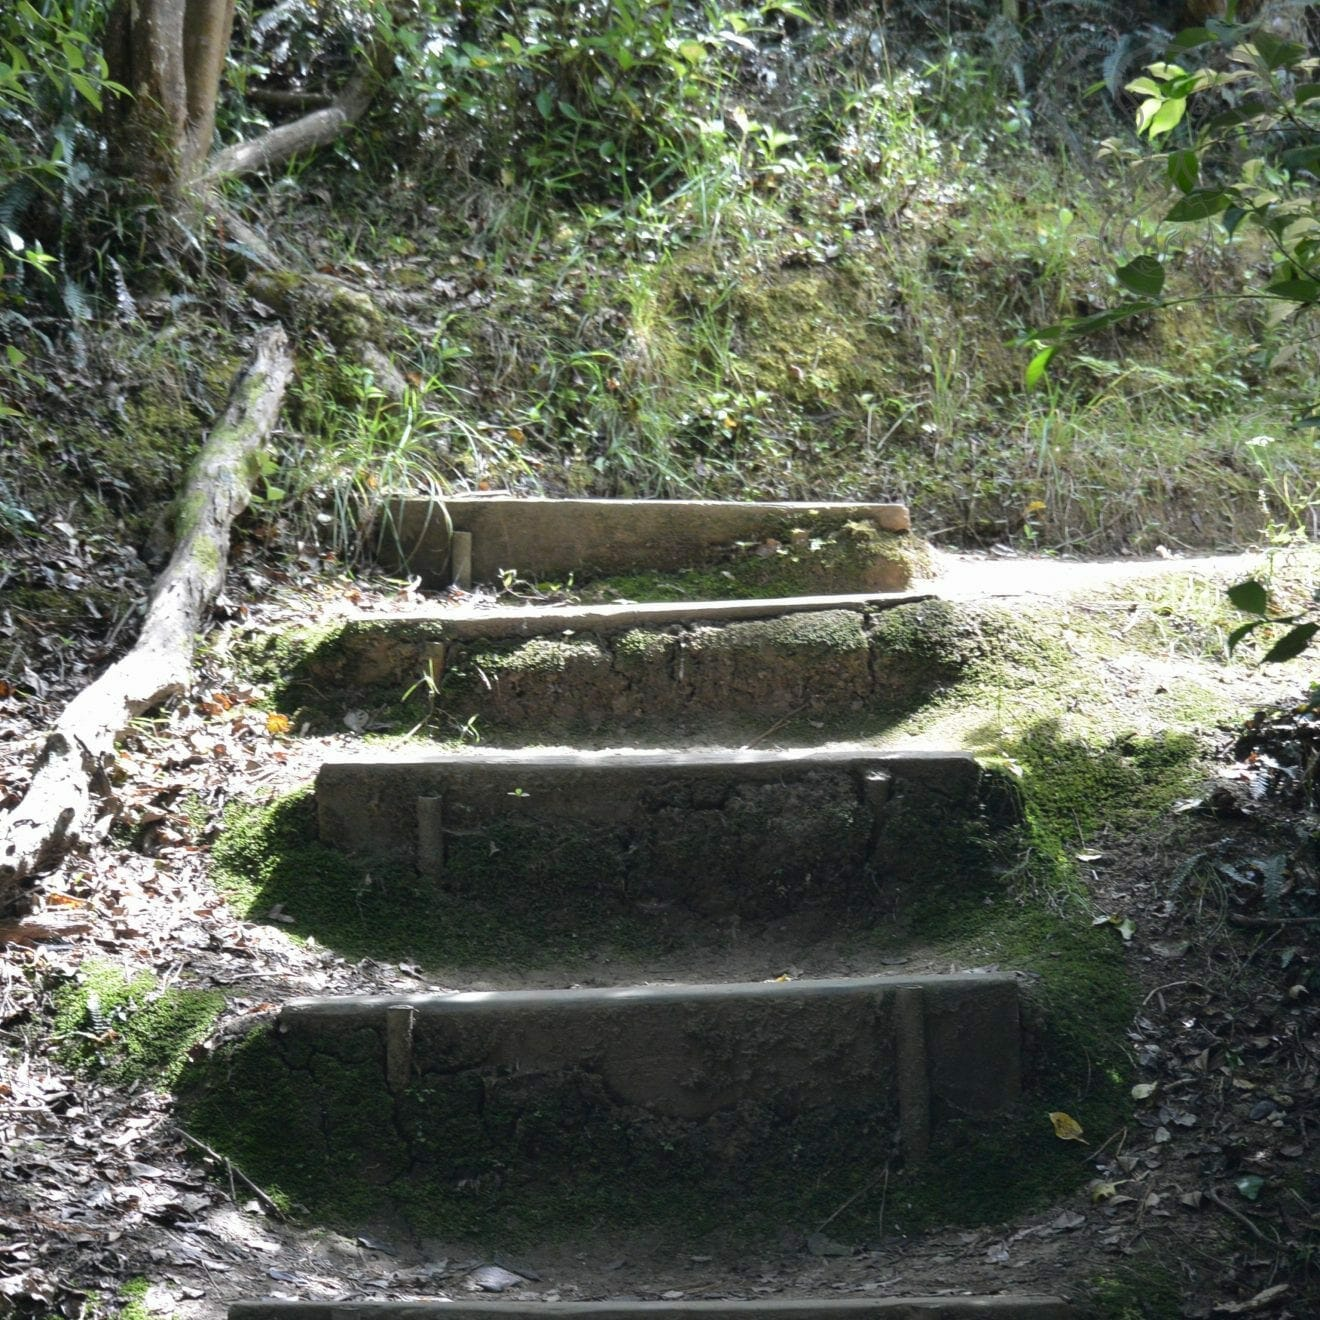 Rustic staircase carved into a trail in the Bay of Islands, New Zealand (Miranda Hernandez)